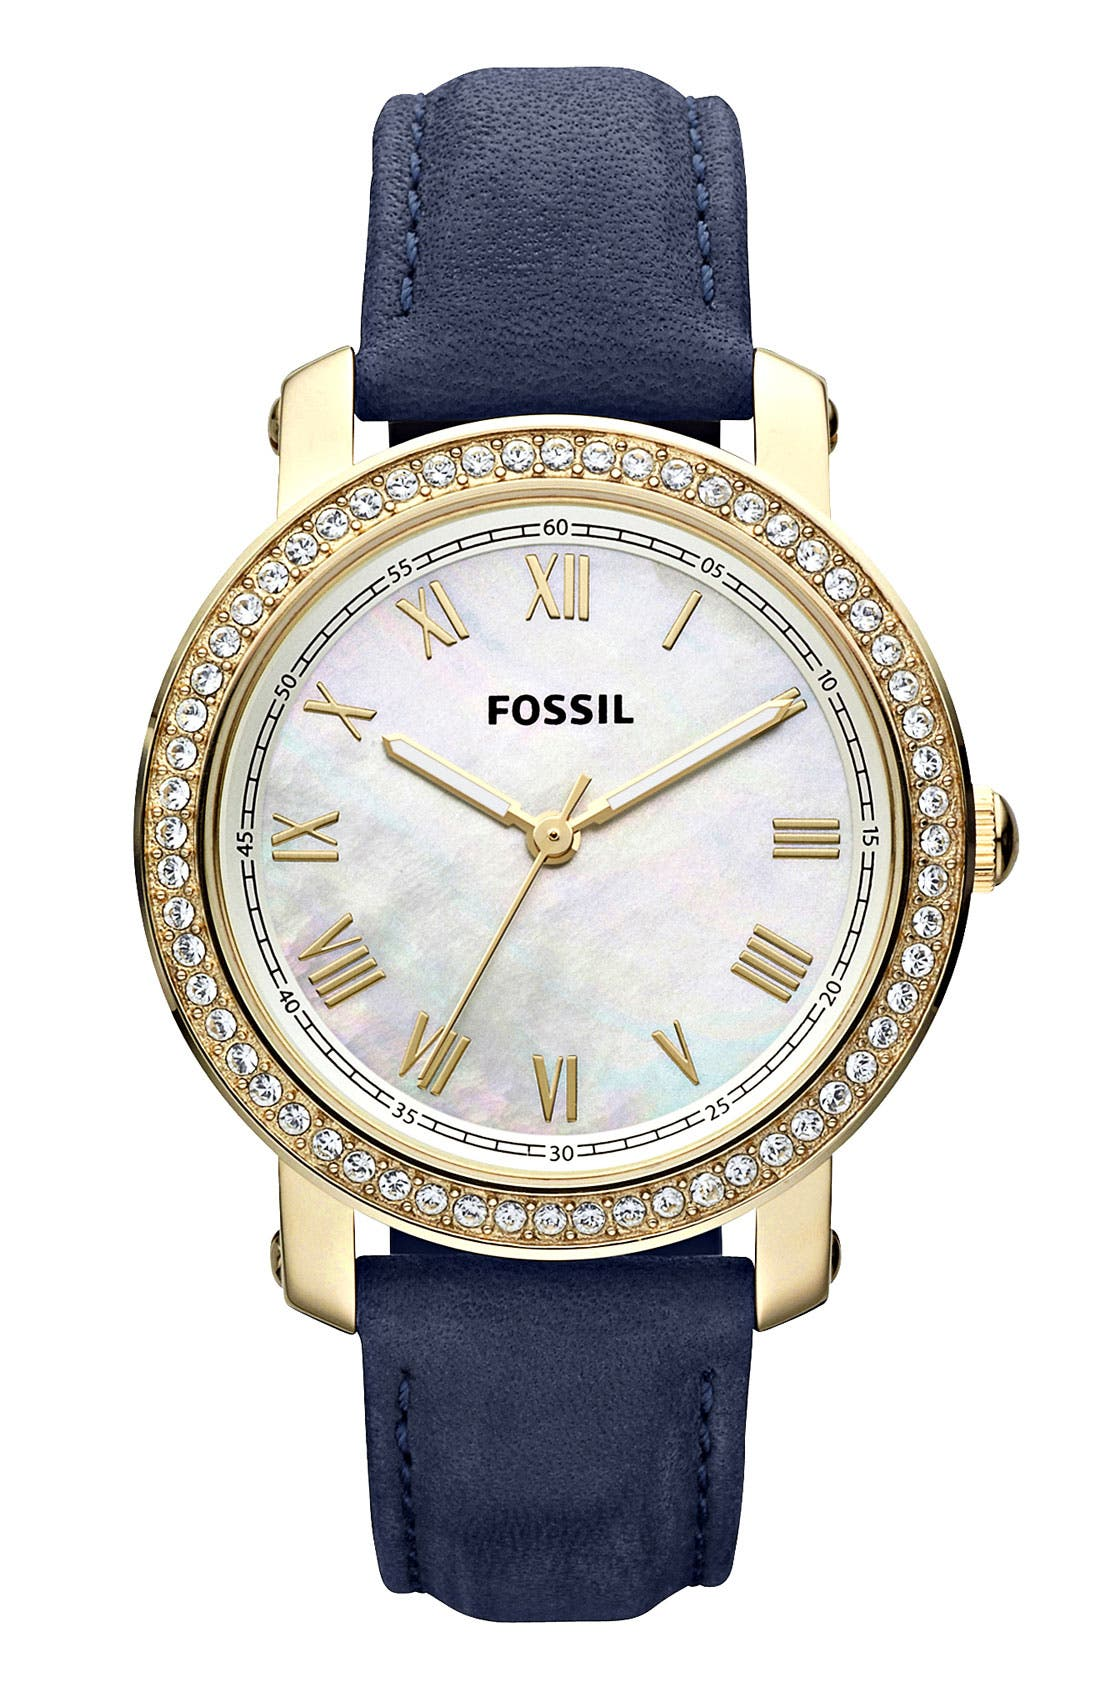 Main Image - Fossil 'Emma' Crystal Bezel Leather Strap Watch, 38mm